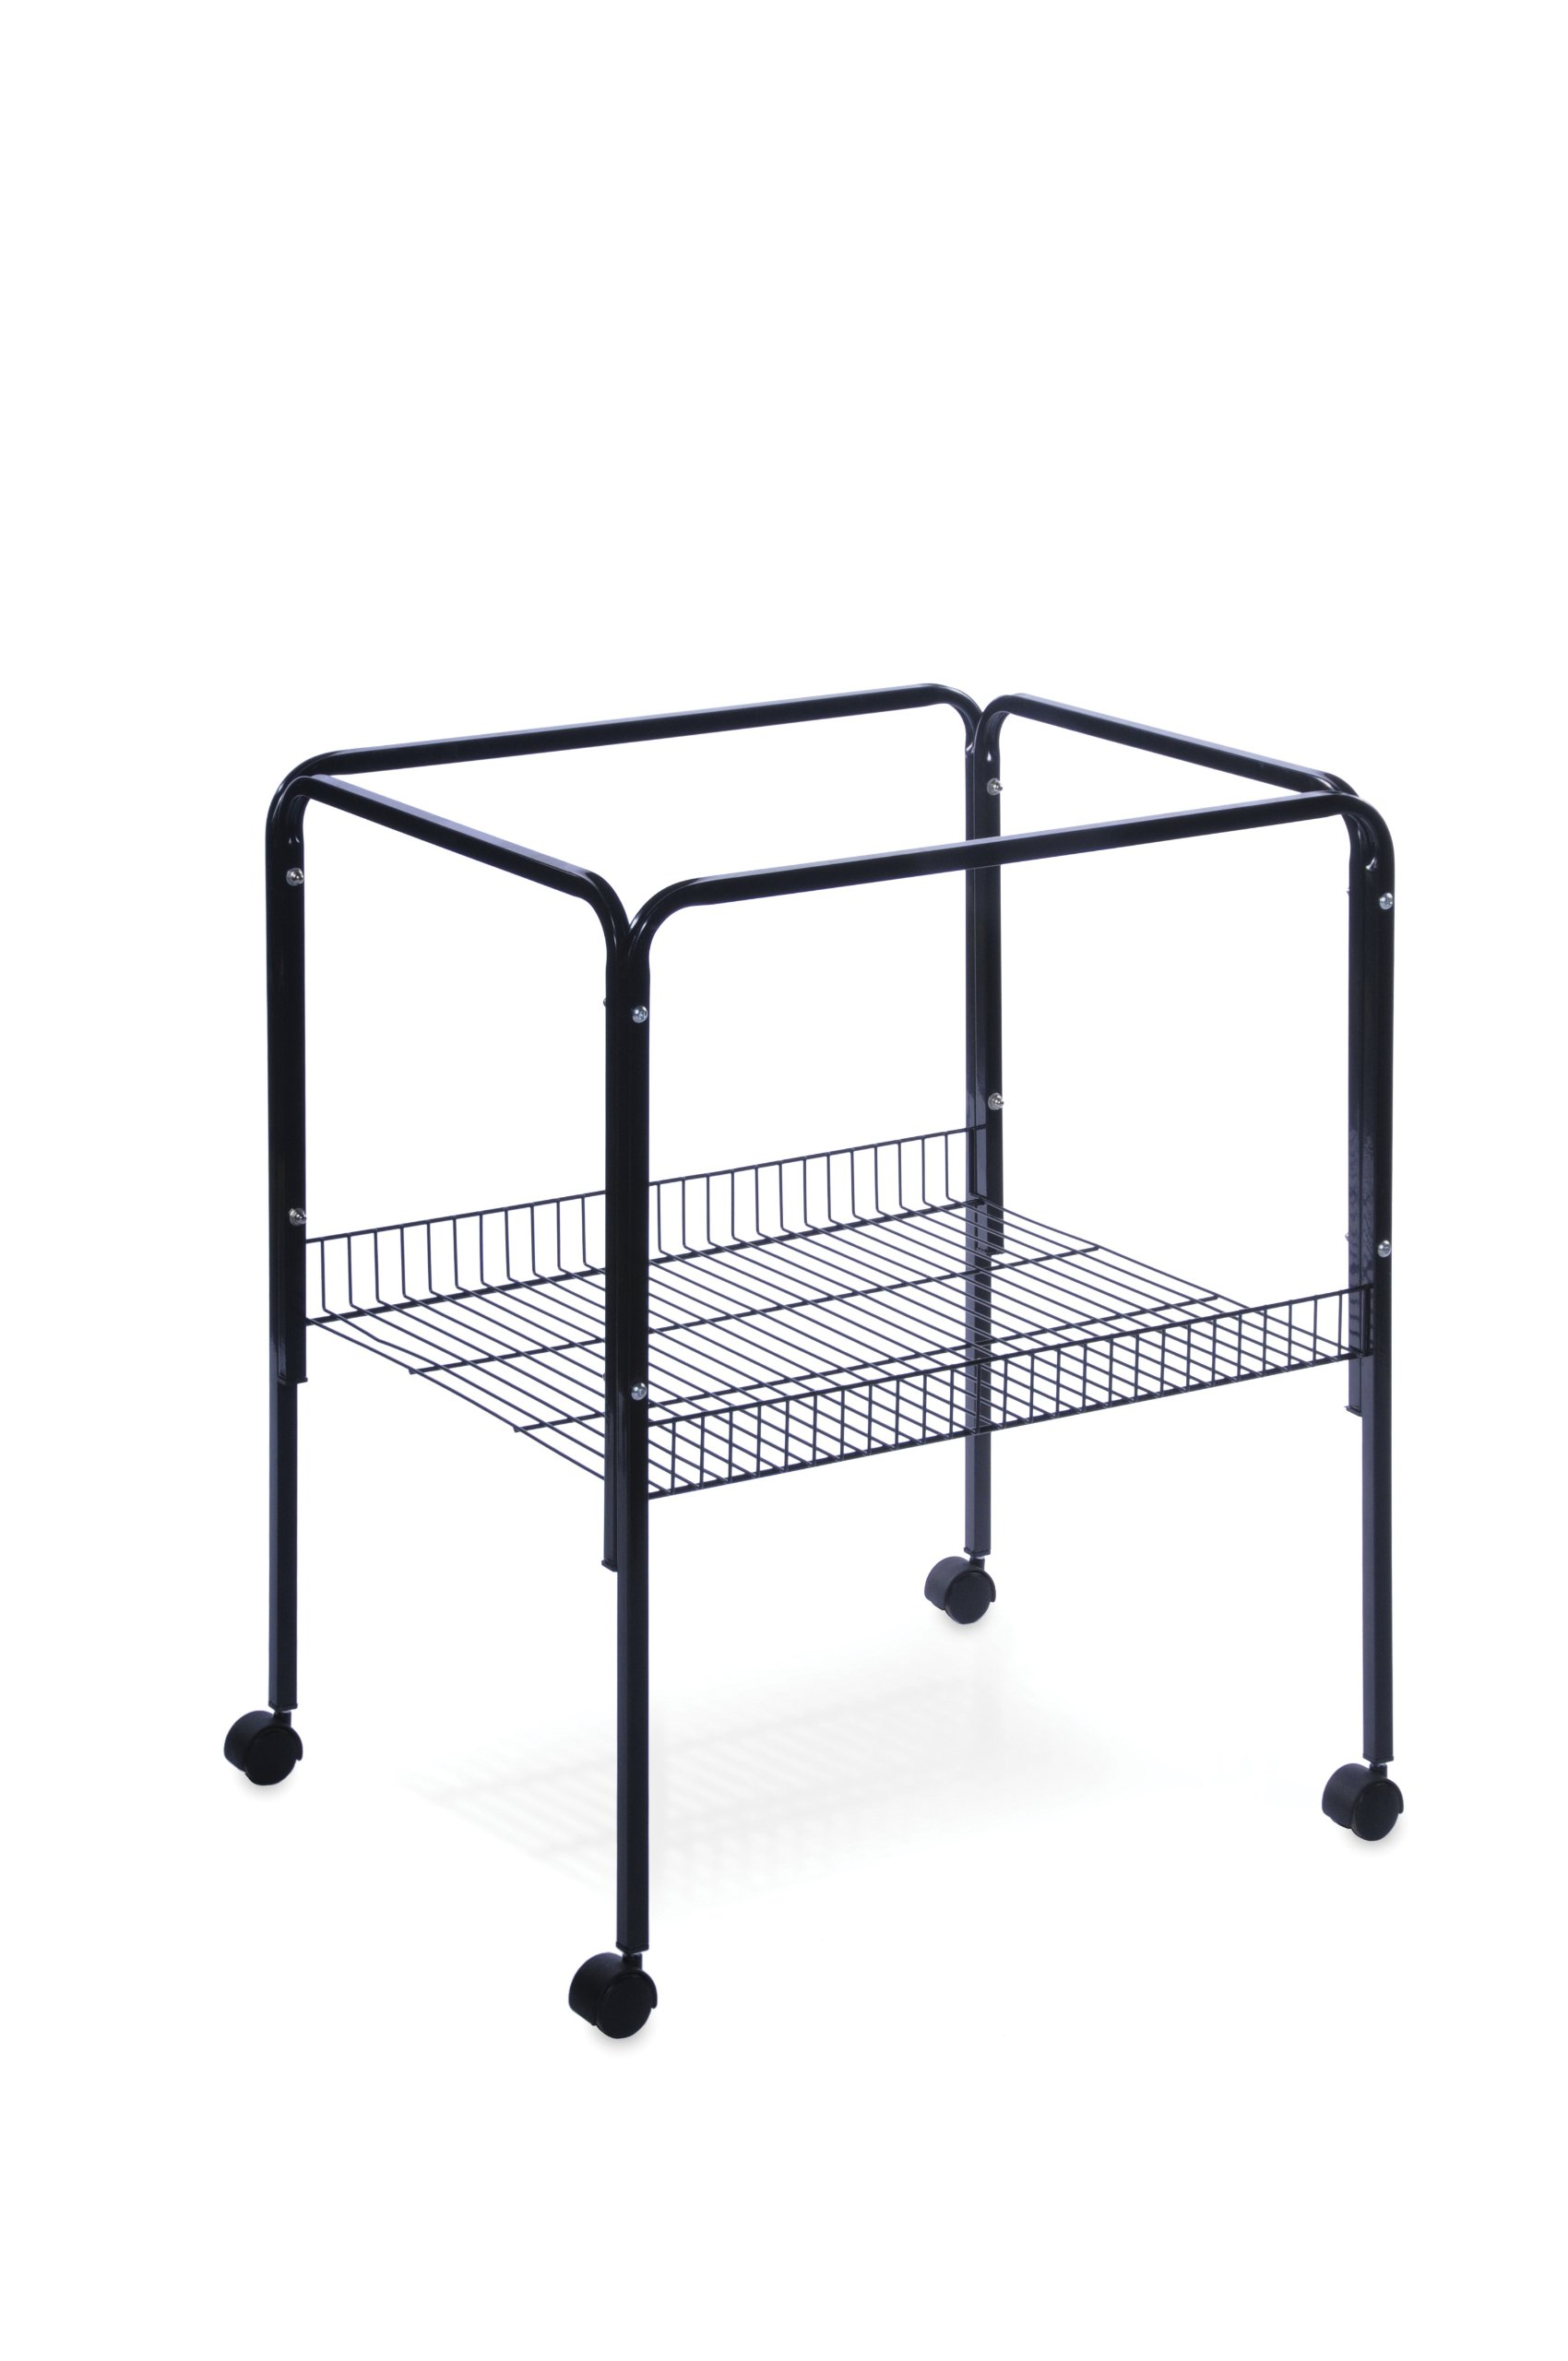 Prevue Pet Products Rolling Stand with Shelf, Black by Prevue Hendryx